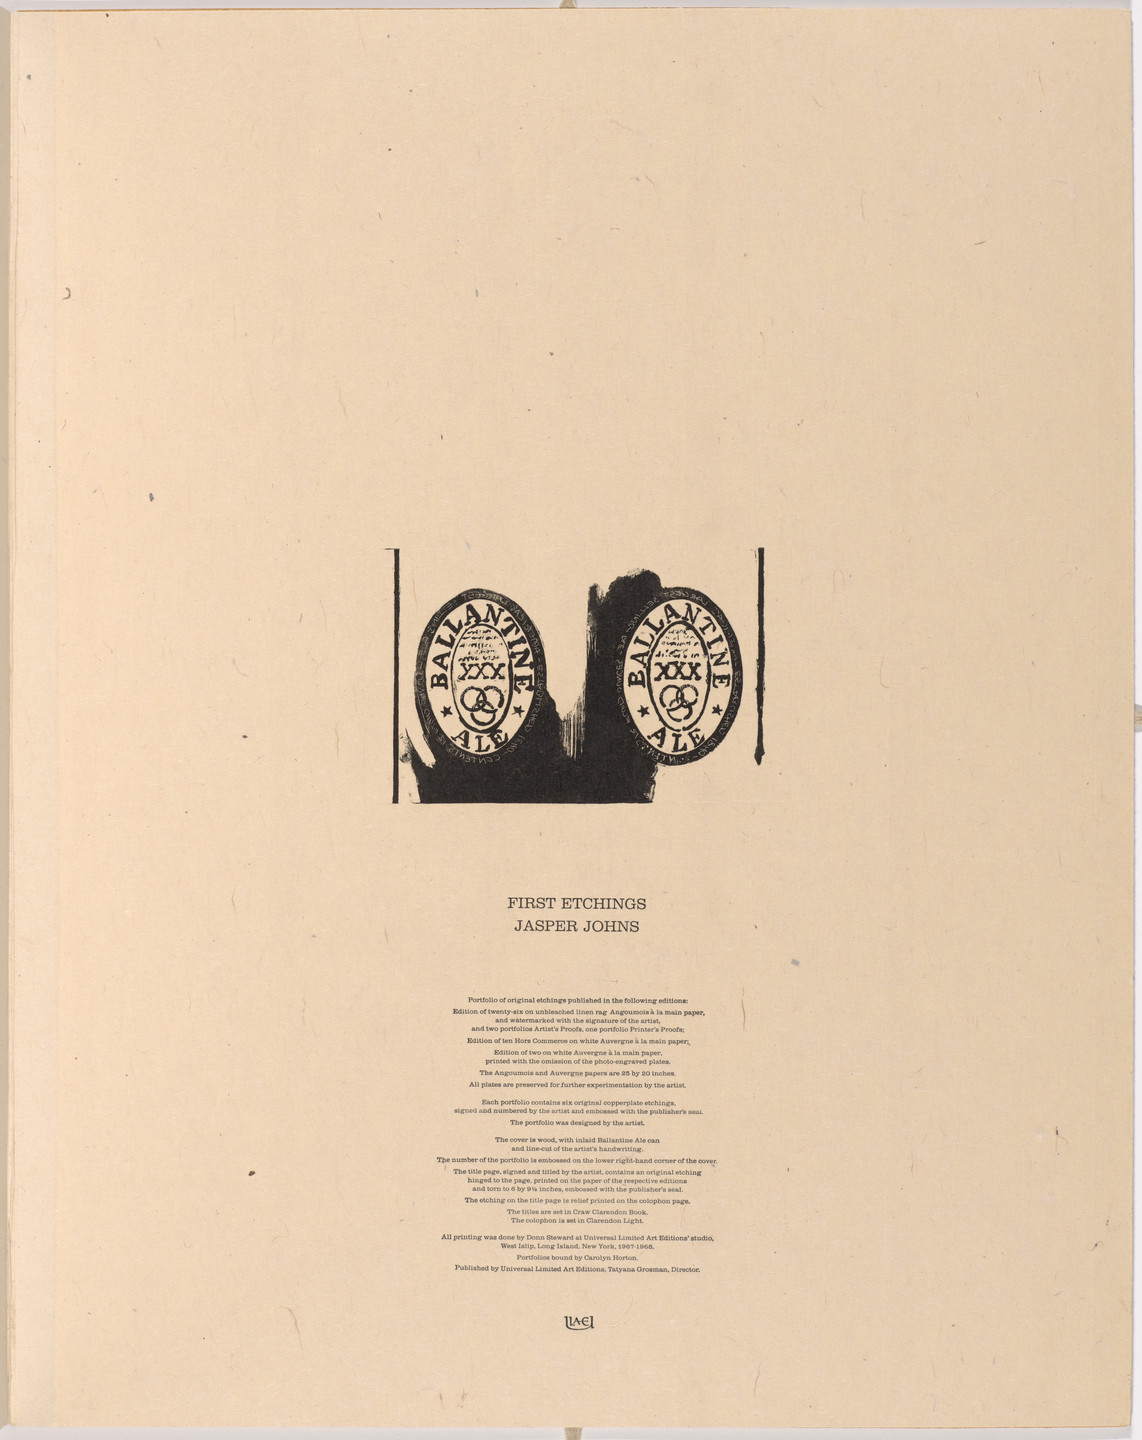 Jasper Johns. Ale Cans (colophon) from 1st Etchings. 1967